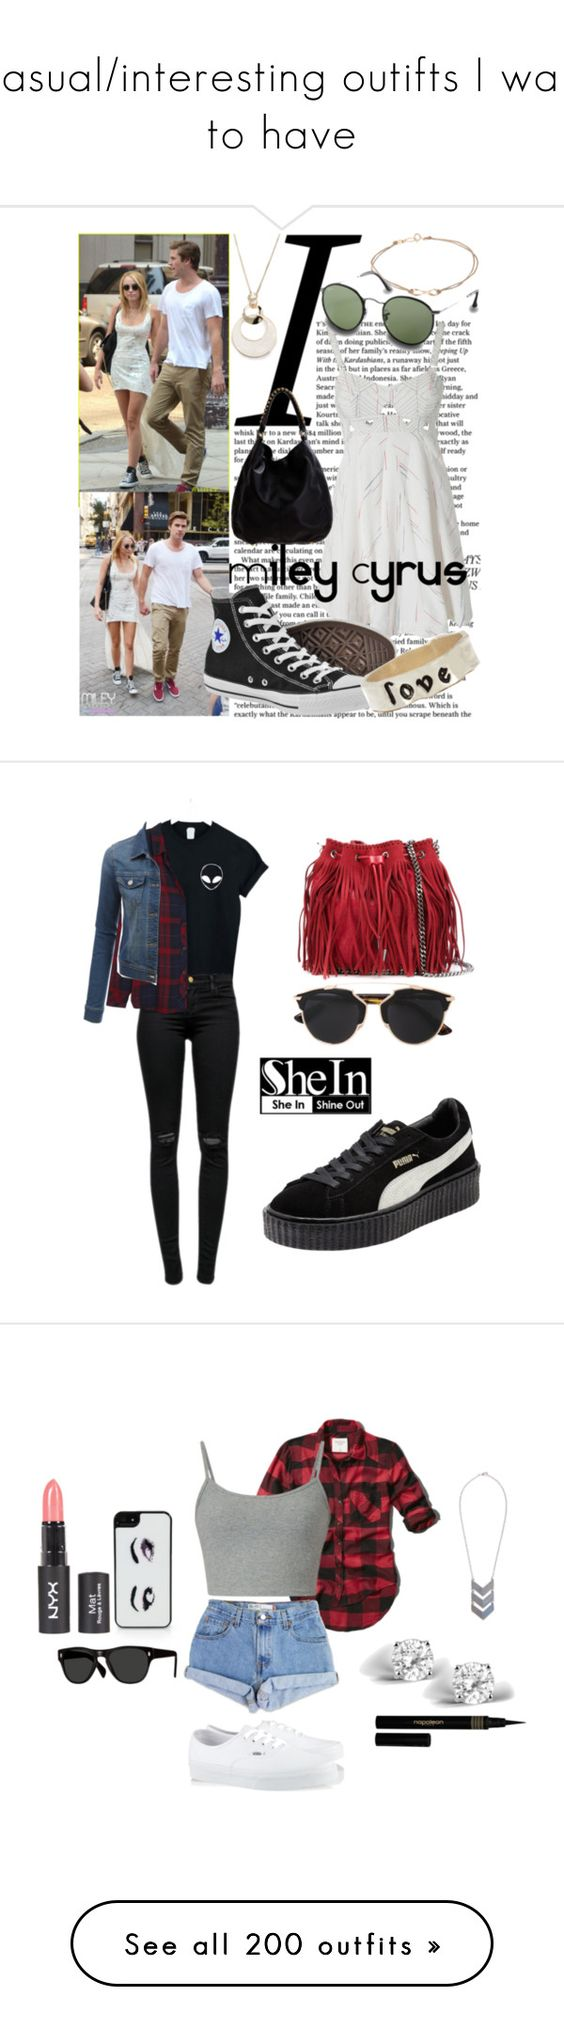 """Casual/interesting outifts I want to have"" by blueberryqueen ❤ liked on Polyvore featuring Cyrus, Free People, Converse, Poupette, Linea Pelle, Ray-Ban, Rebecca, River Island, WithChic and J Brand"